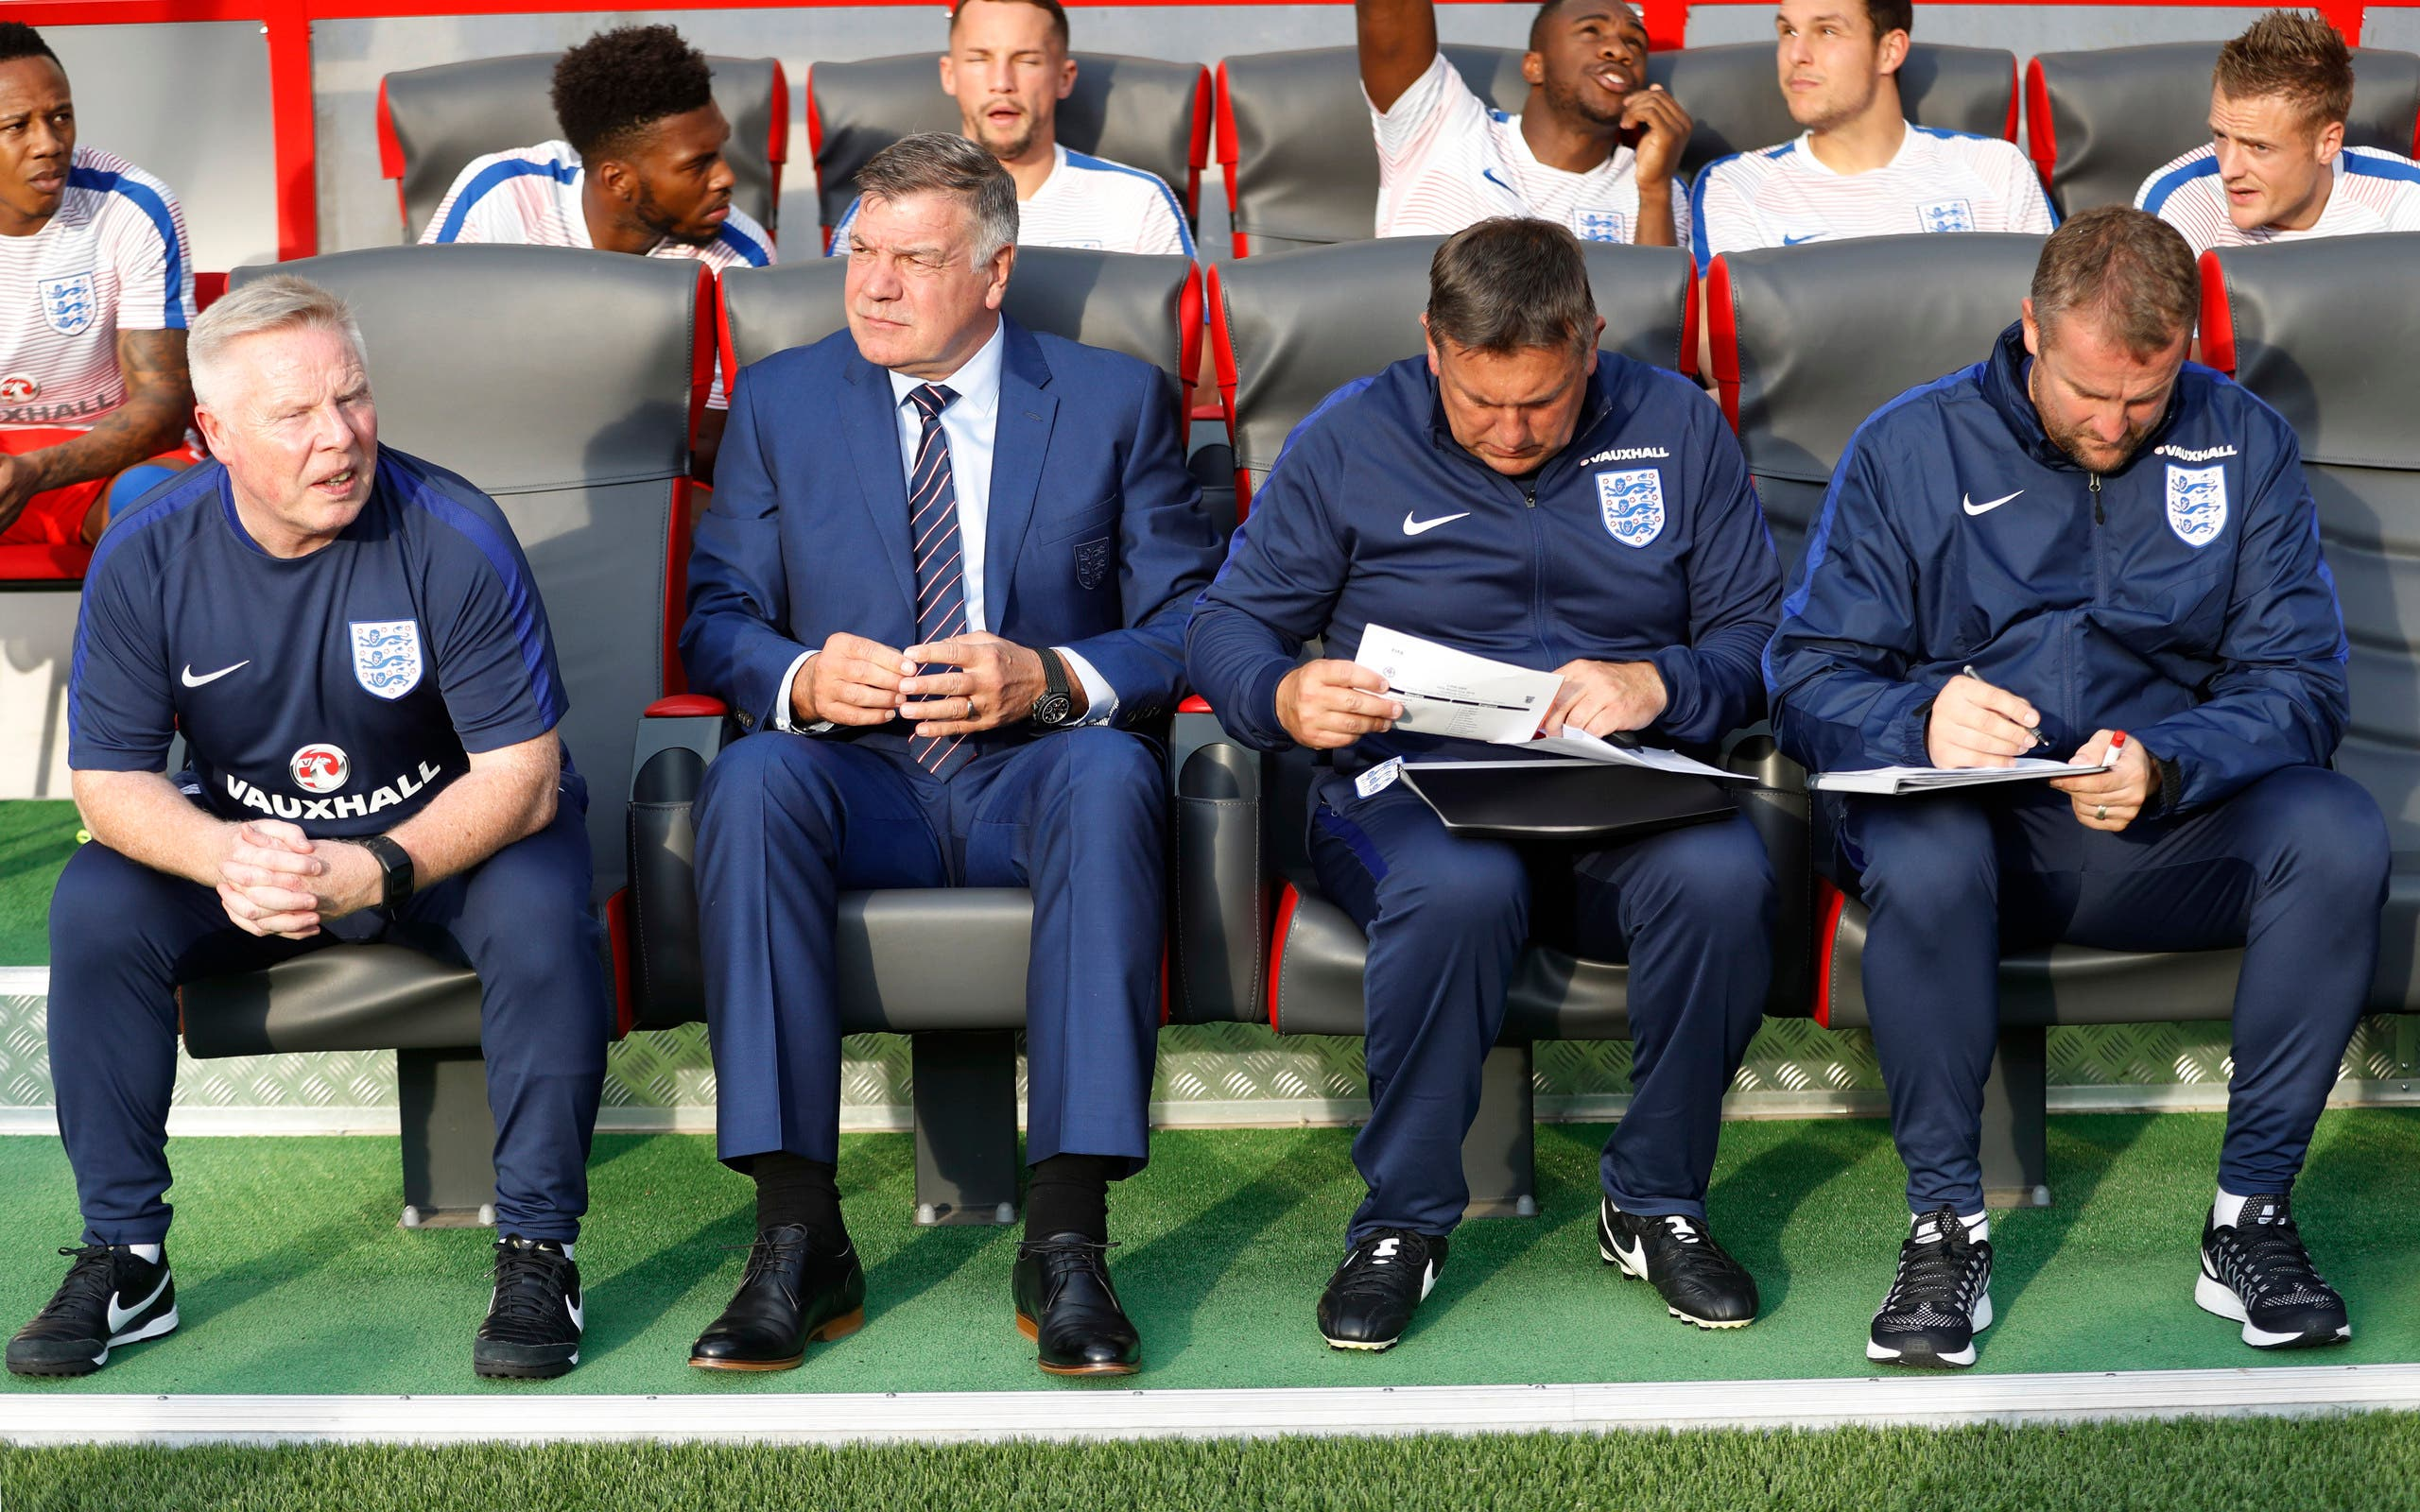 England manager Sam Allardyce and assistant manager Sammy Lee (L) before the match Action Images via Reuters